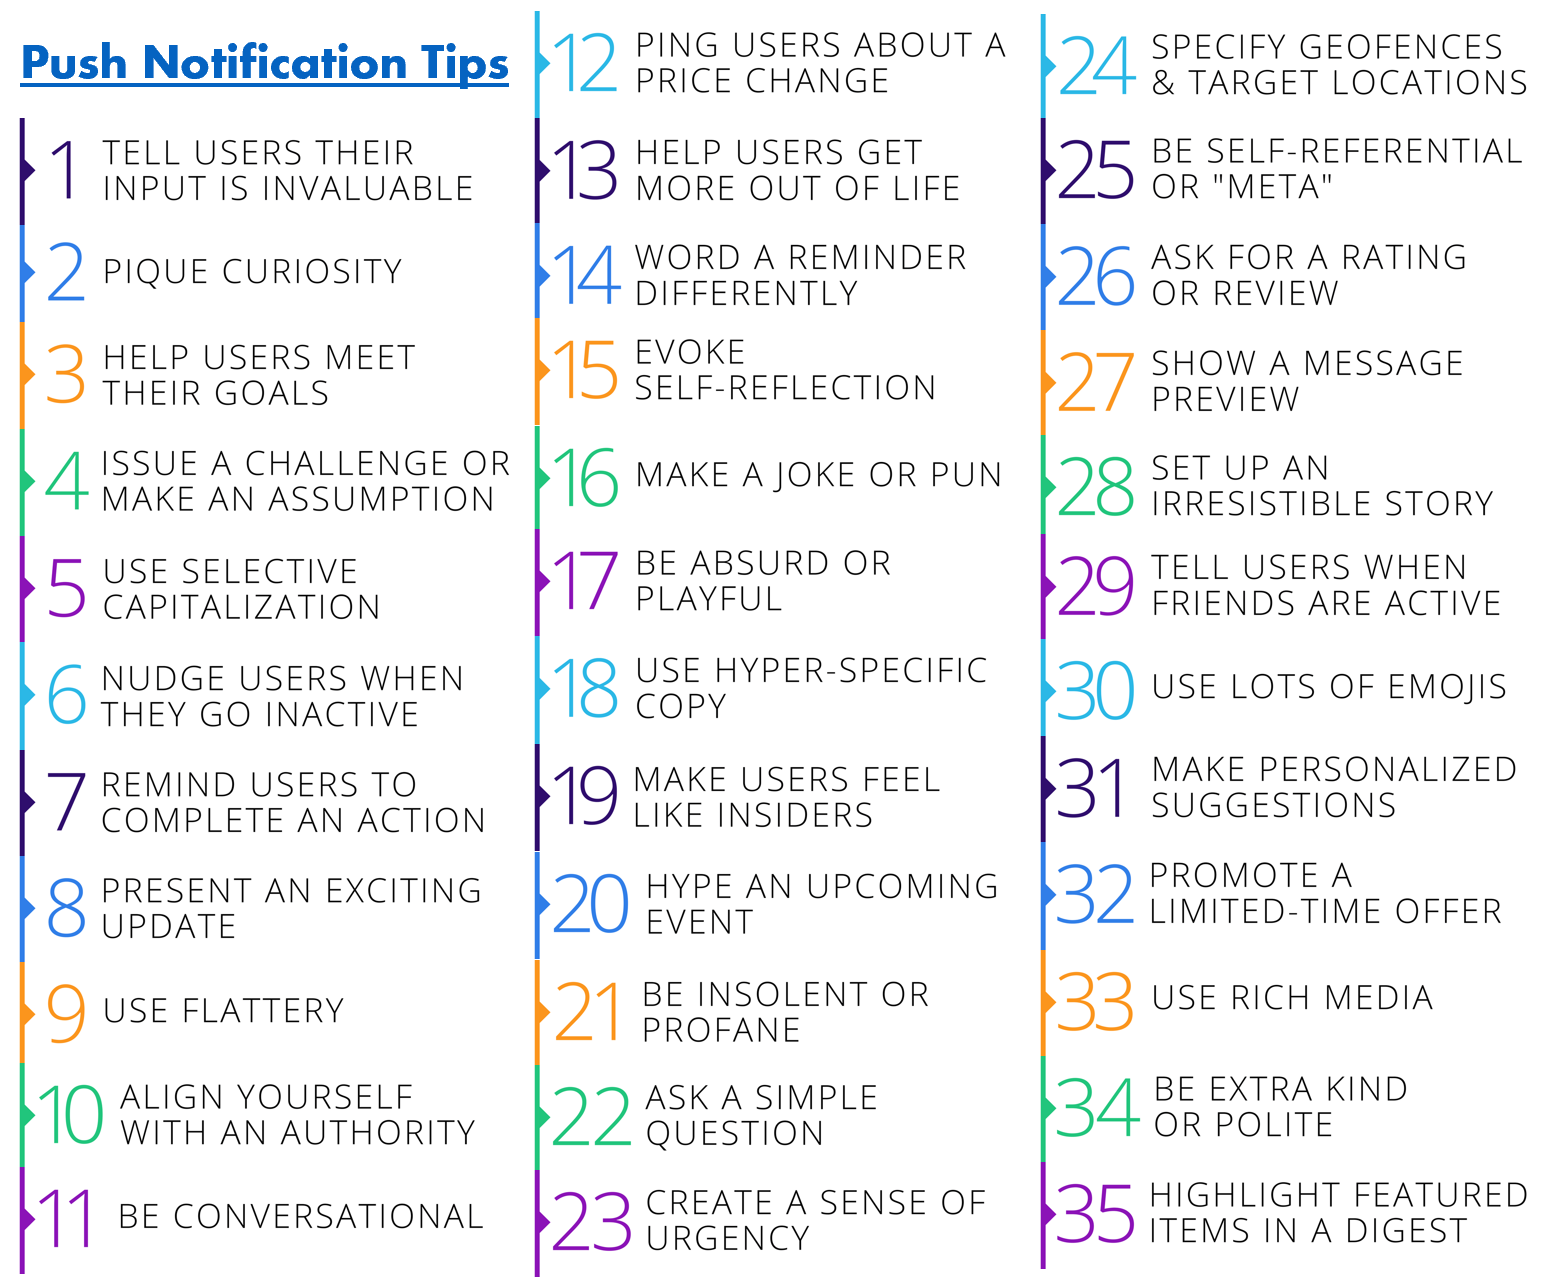 Push Notification Best Practices 35 Tips For Dramatically